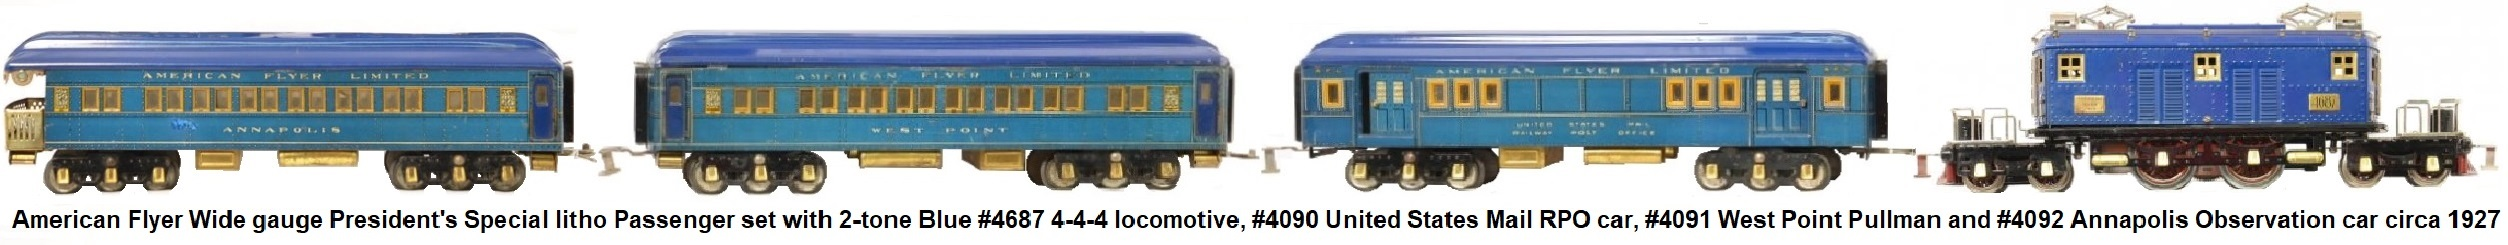 American Flyer Wide gauge Prewar President's Special lithographed passenger set consisting of Blue #4687 4-4-4 locomotive, #4090 United States Mail RPO car, #4091 West Point Pullman and #4092 Annapolis Observation car circa 1927